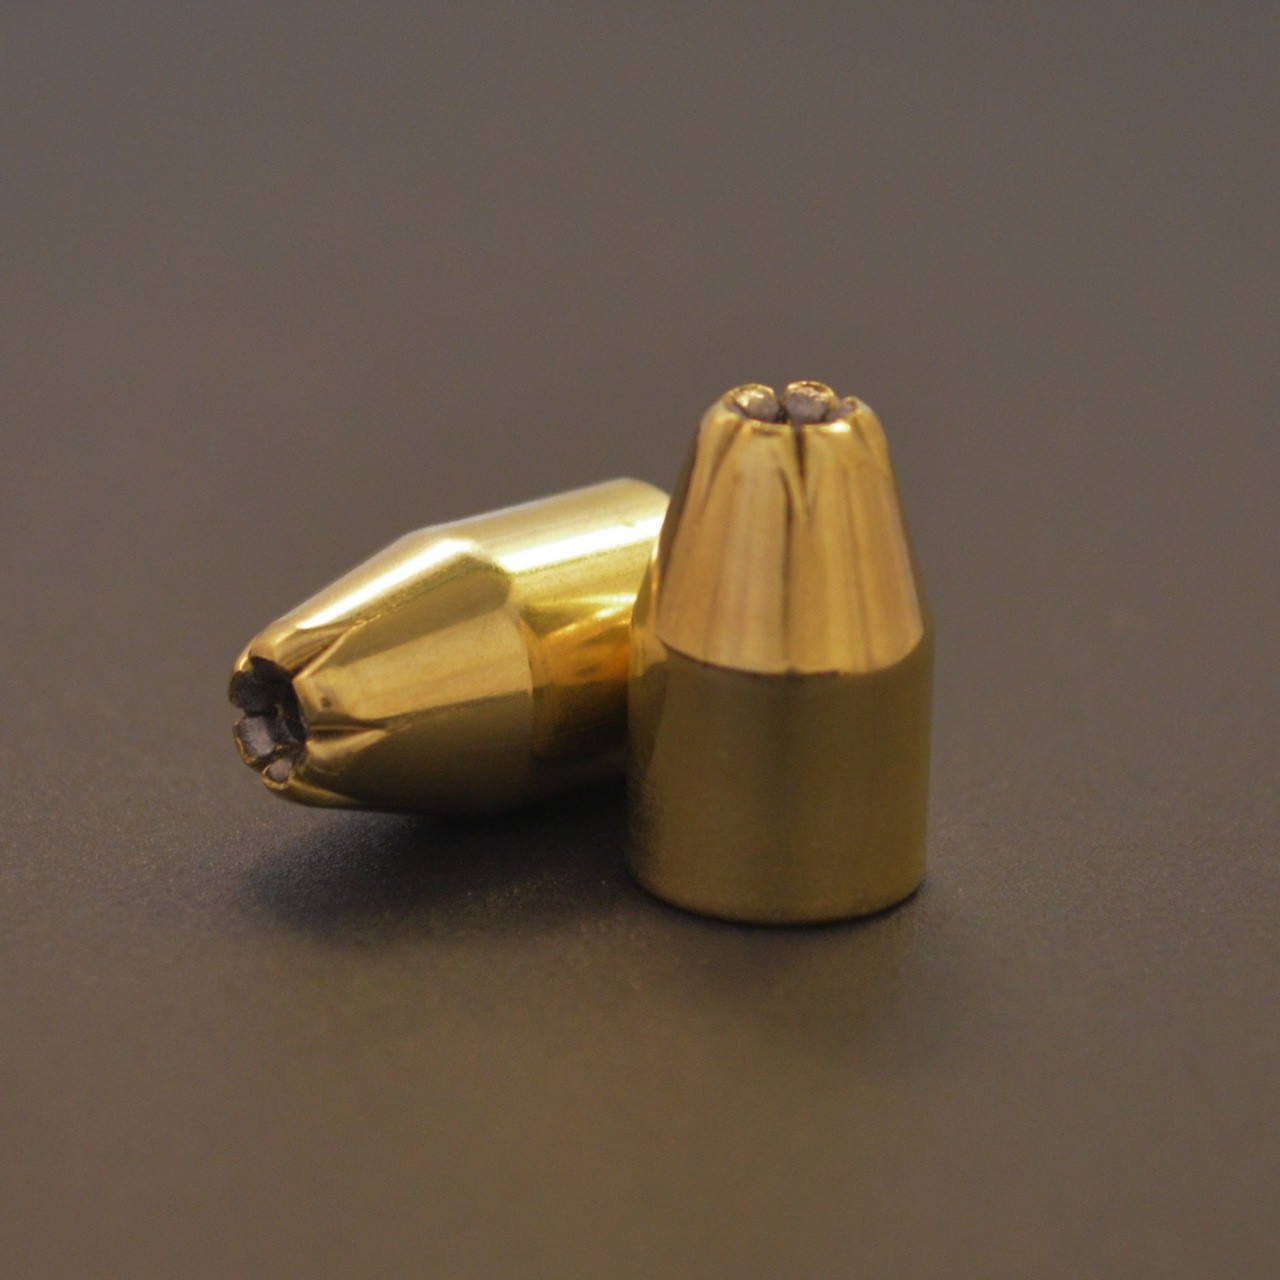 9mm/124gr JHP - 3,750ct CASE